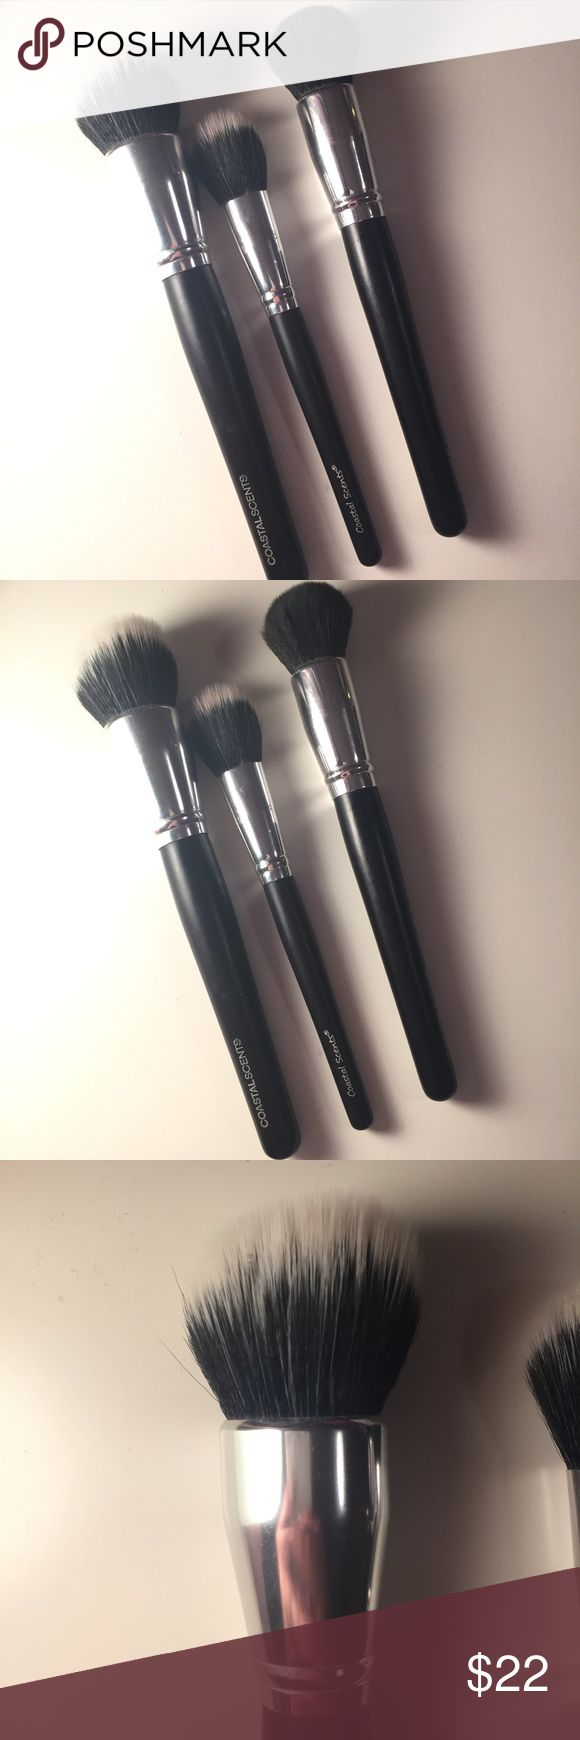 coastal scents brushes uses. ❗flash sale❗coastal scents makeup brush bundle coastal brushes uses e